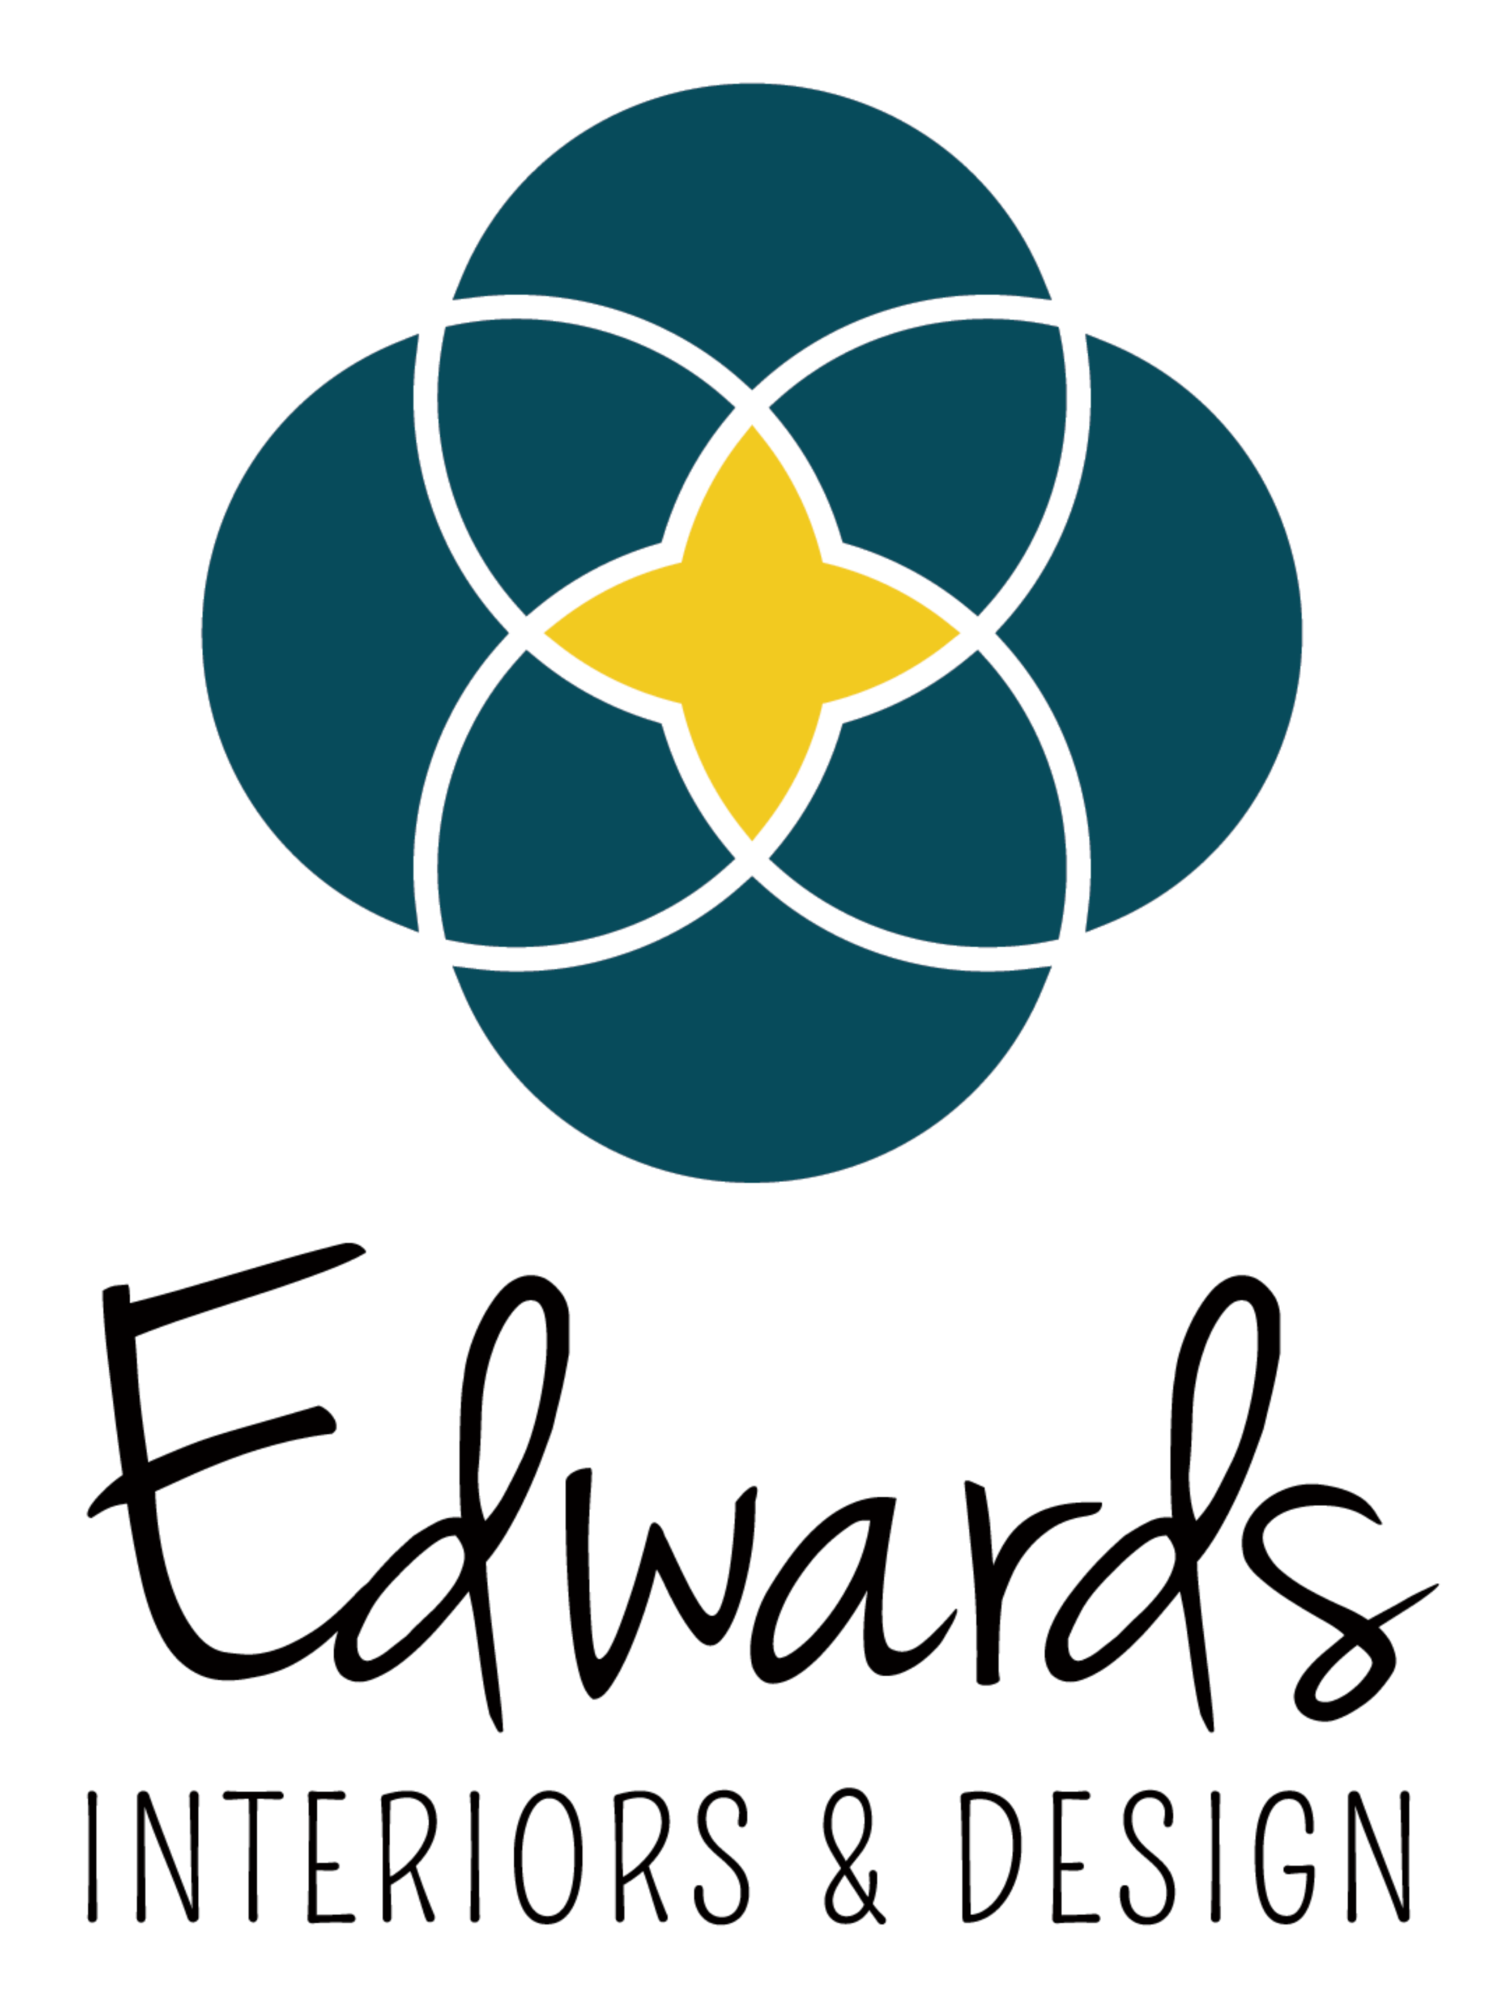 Edwards Interiors Design LLC